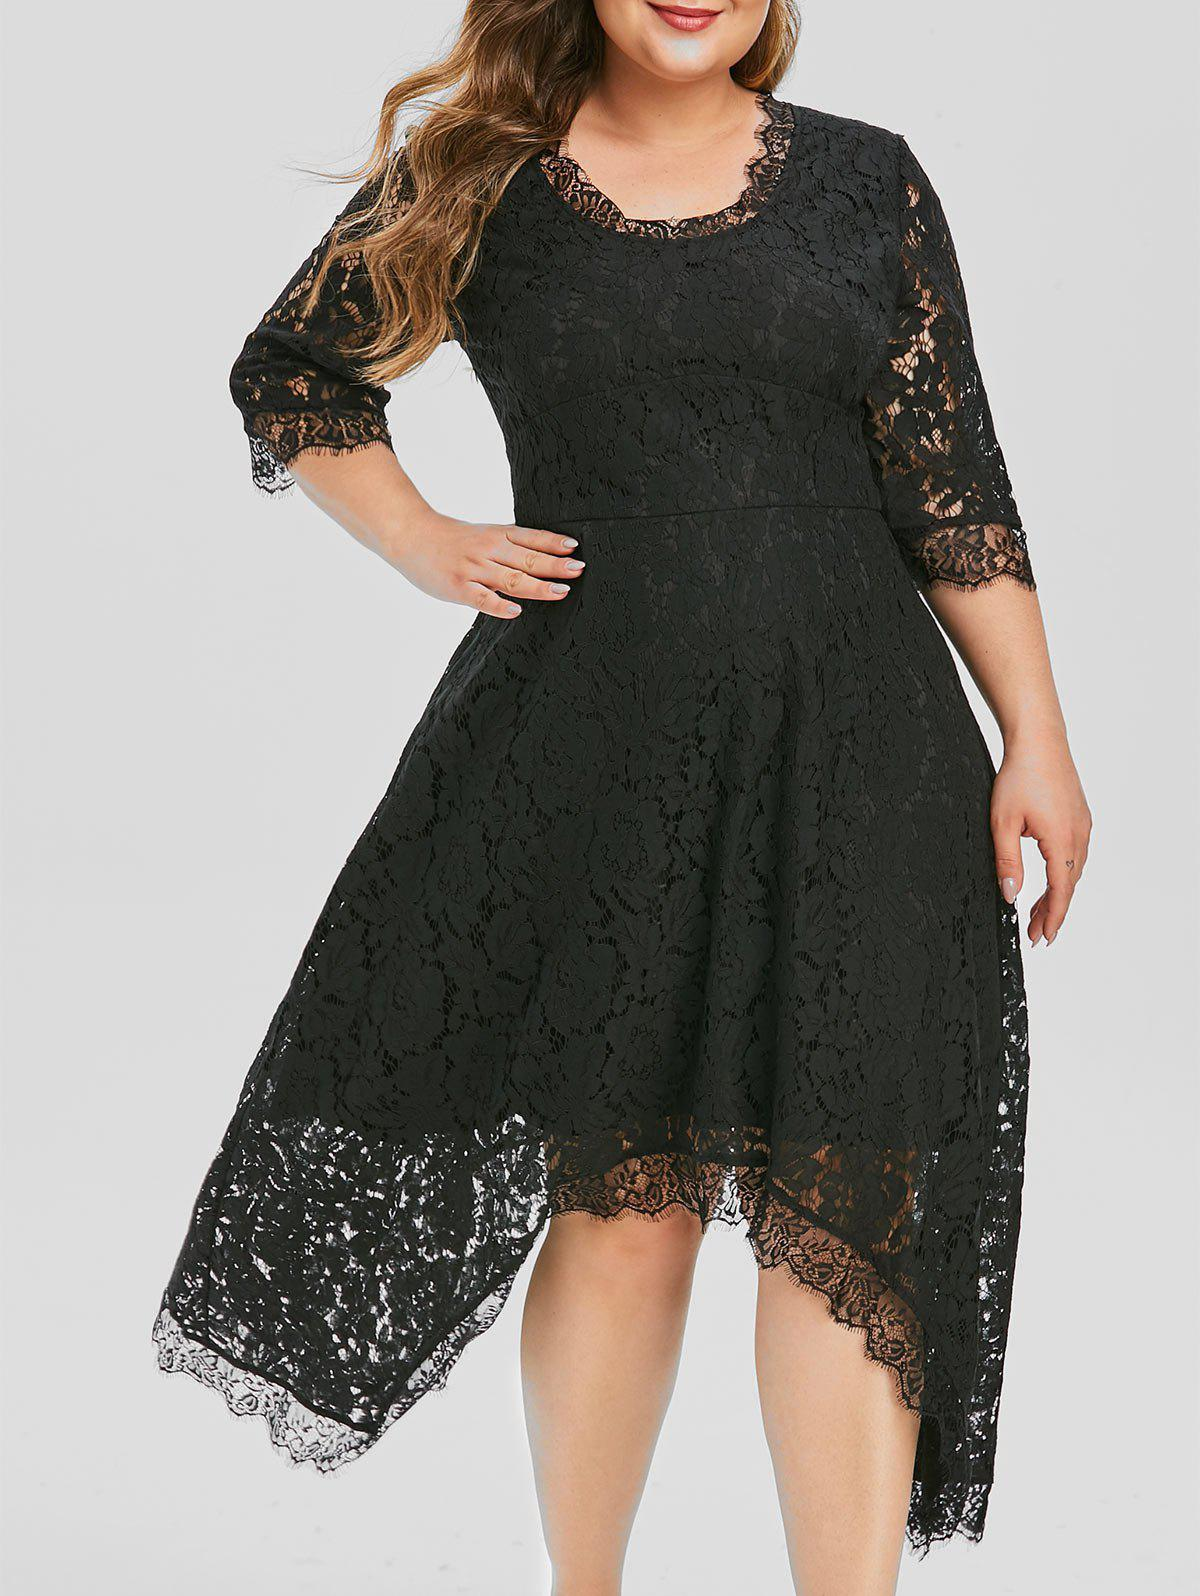 Plus Size Handkerchief Lace Evening Dress фото